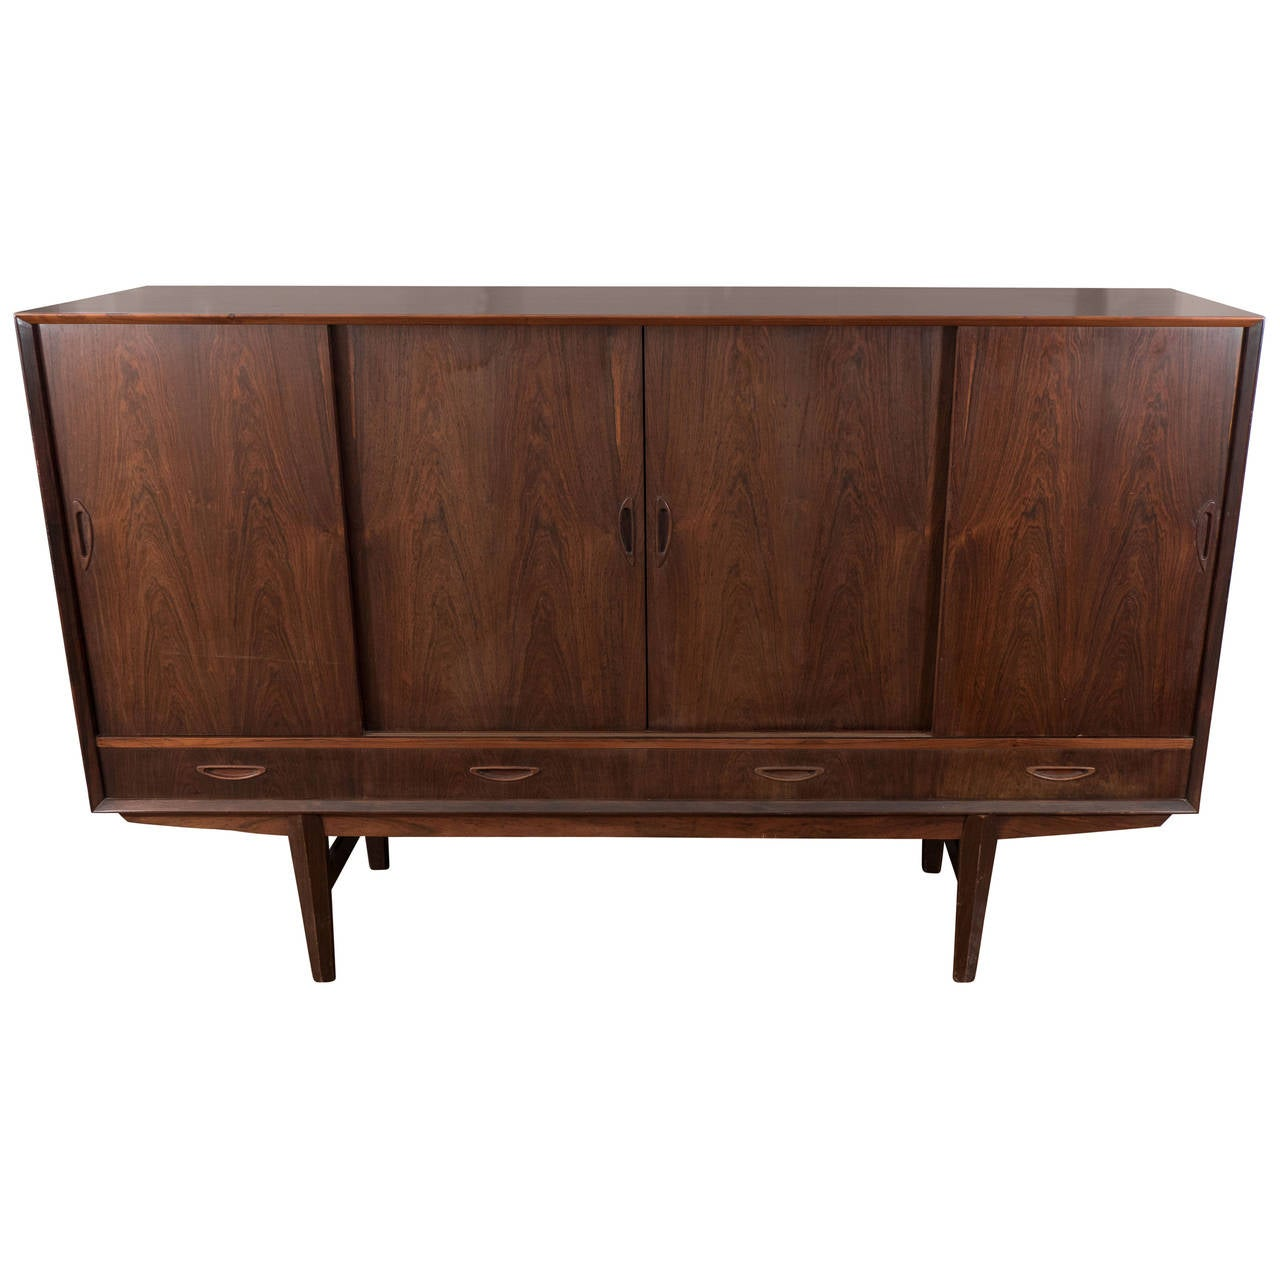 Danish Mid Century Modern Rosewood Credenza And Bar